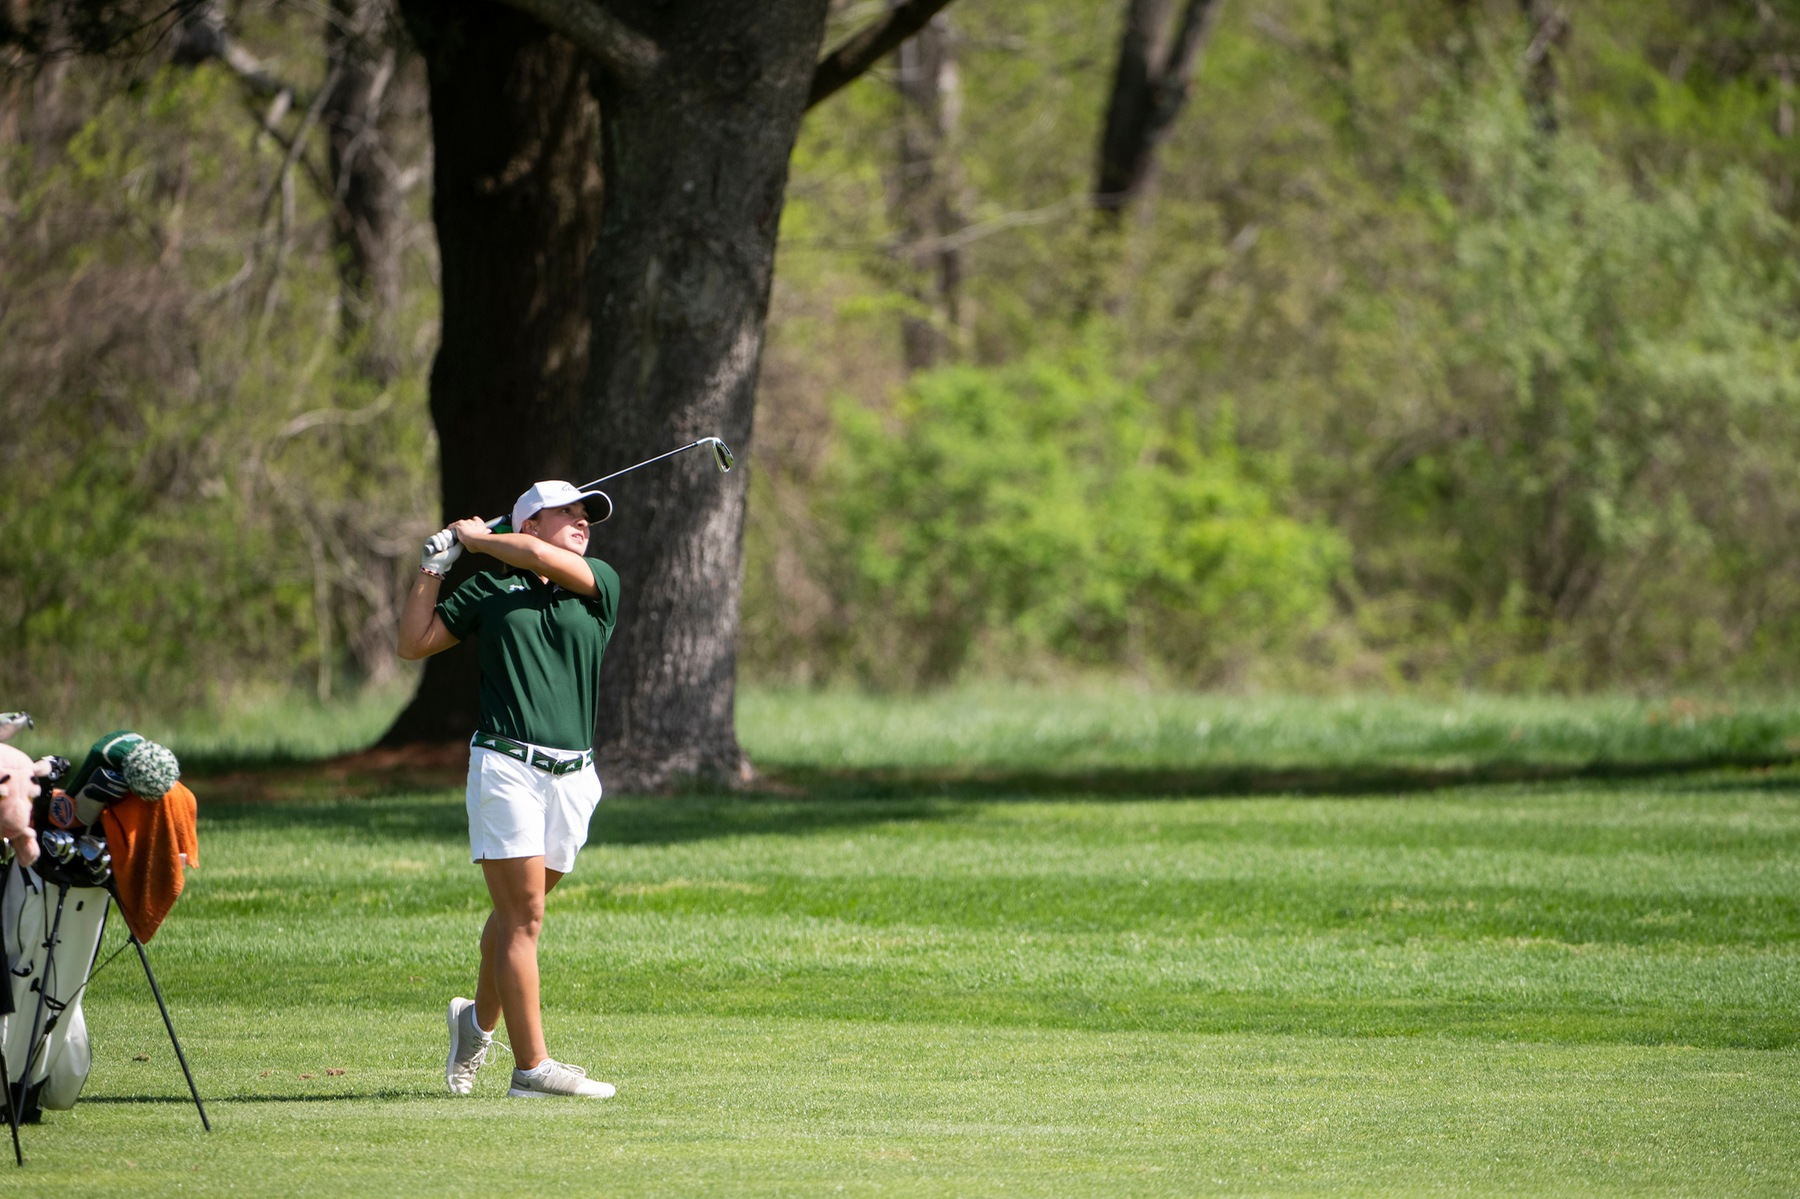 VanDeCar Matches Personal Best In Second Round of NCAA Championships, Mustangs 18th